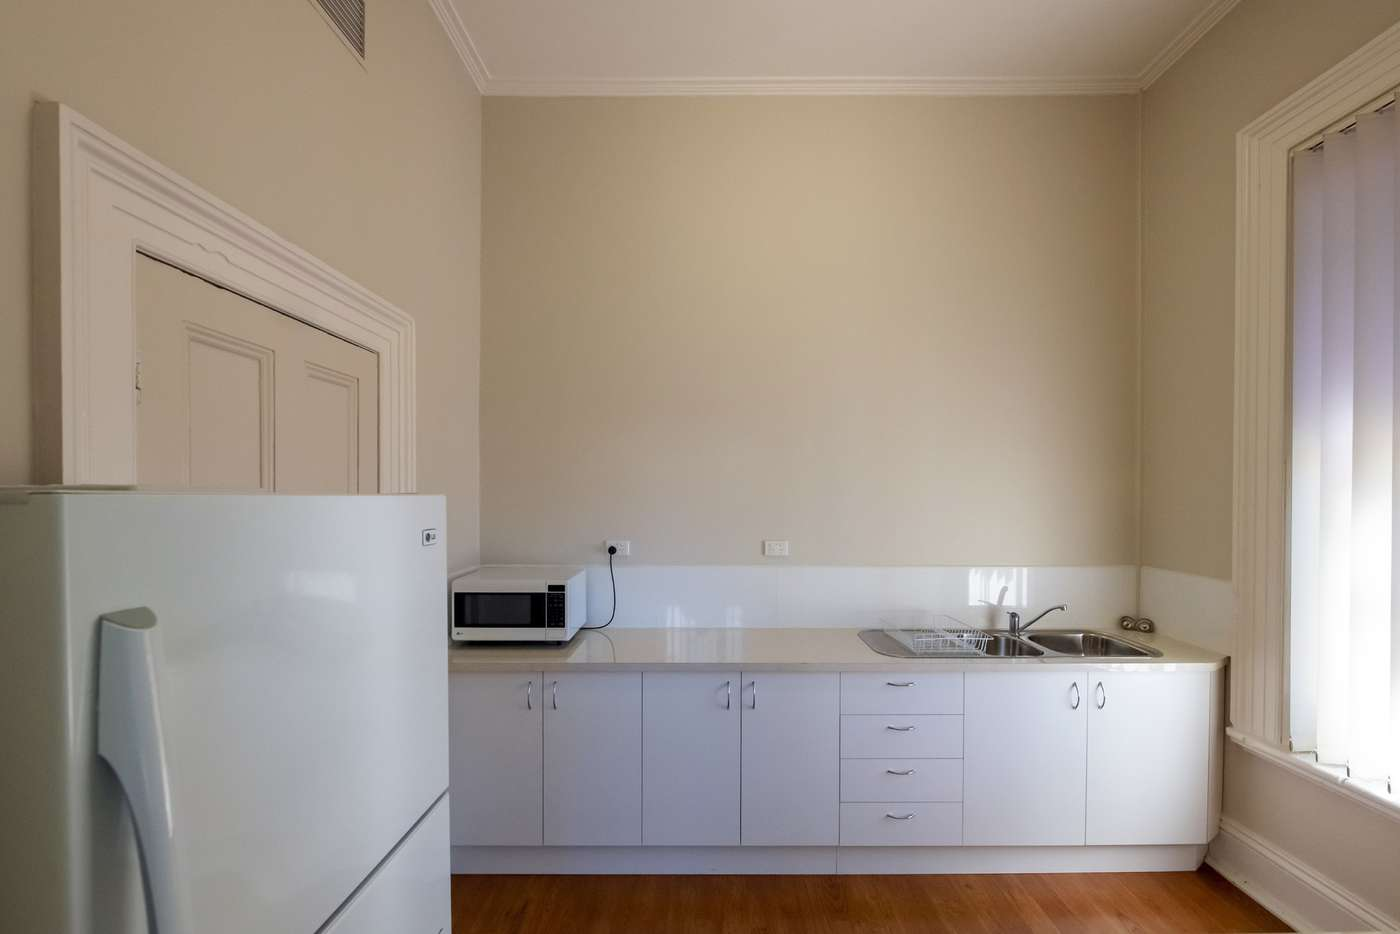 Sixth view of Homely house listing, 20 View Street, Bendigo VIC 3550